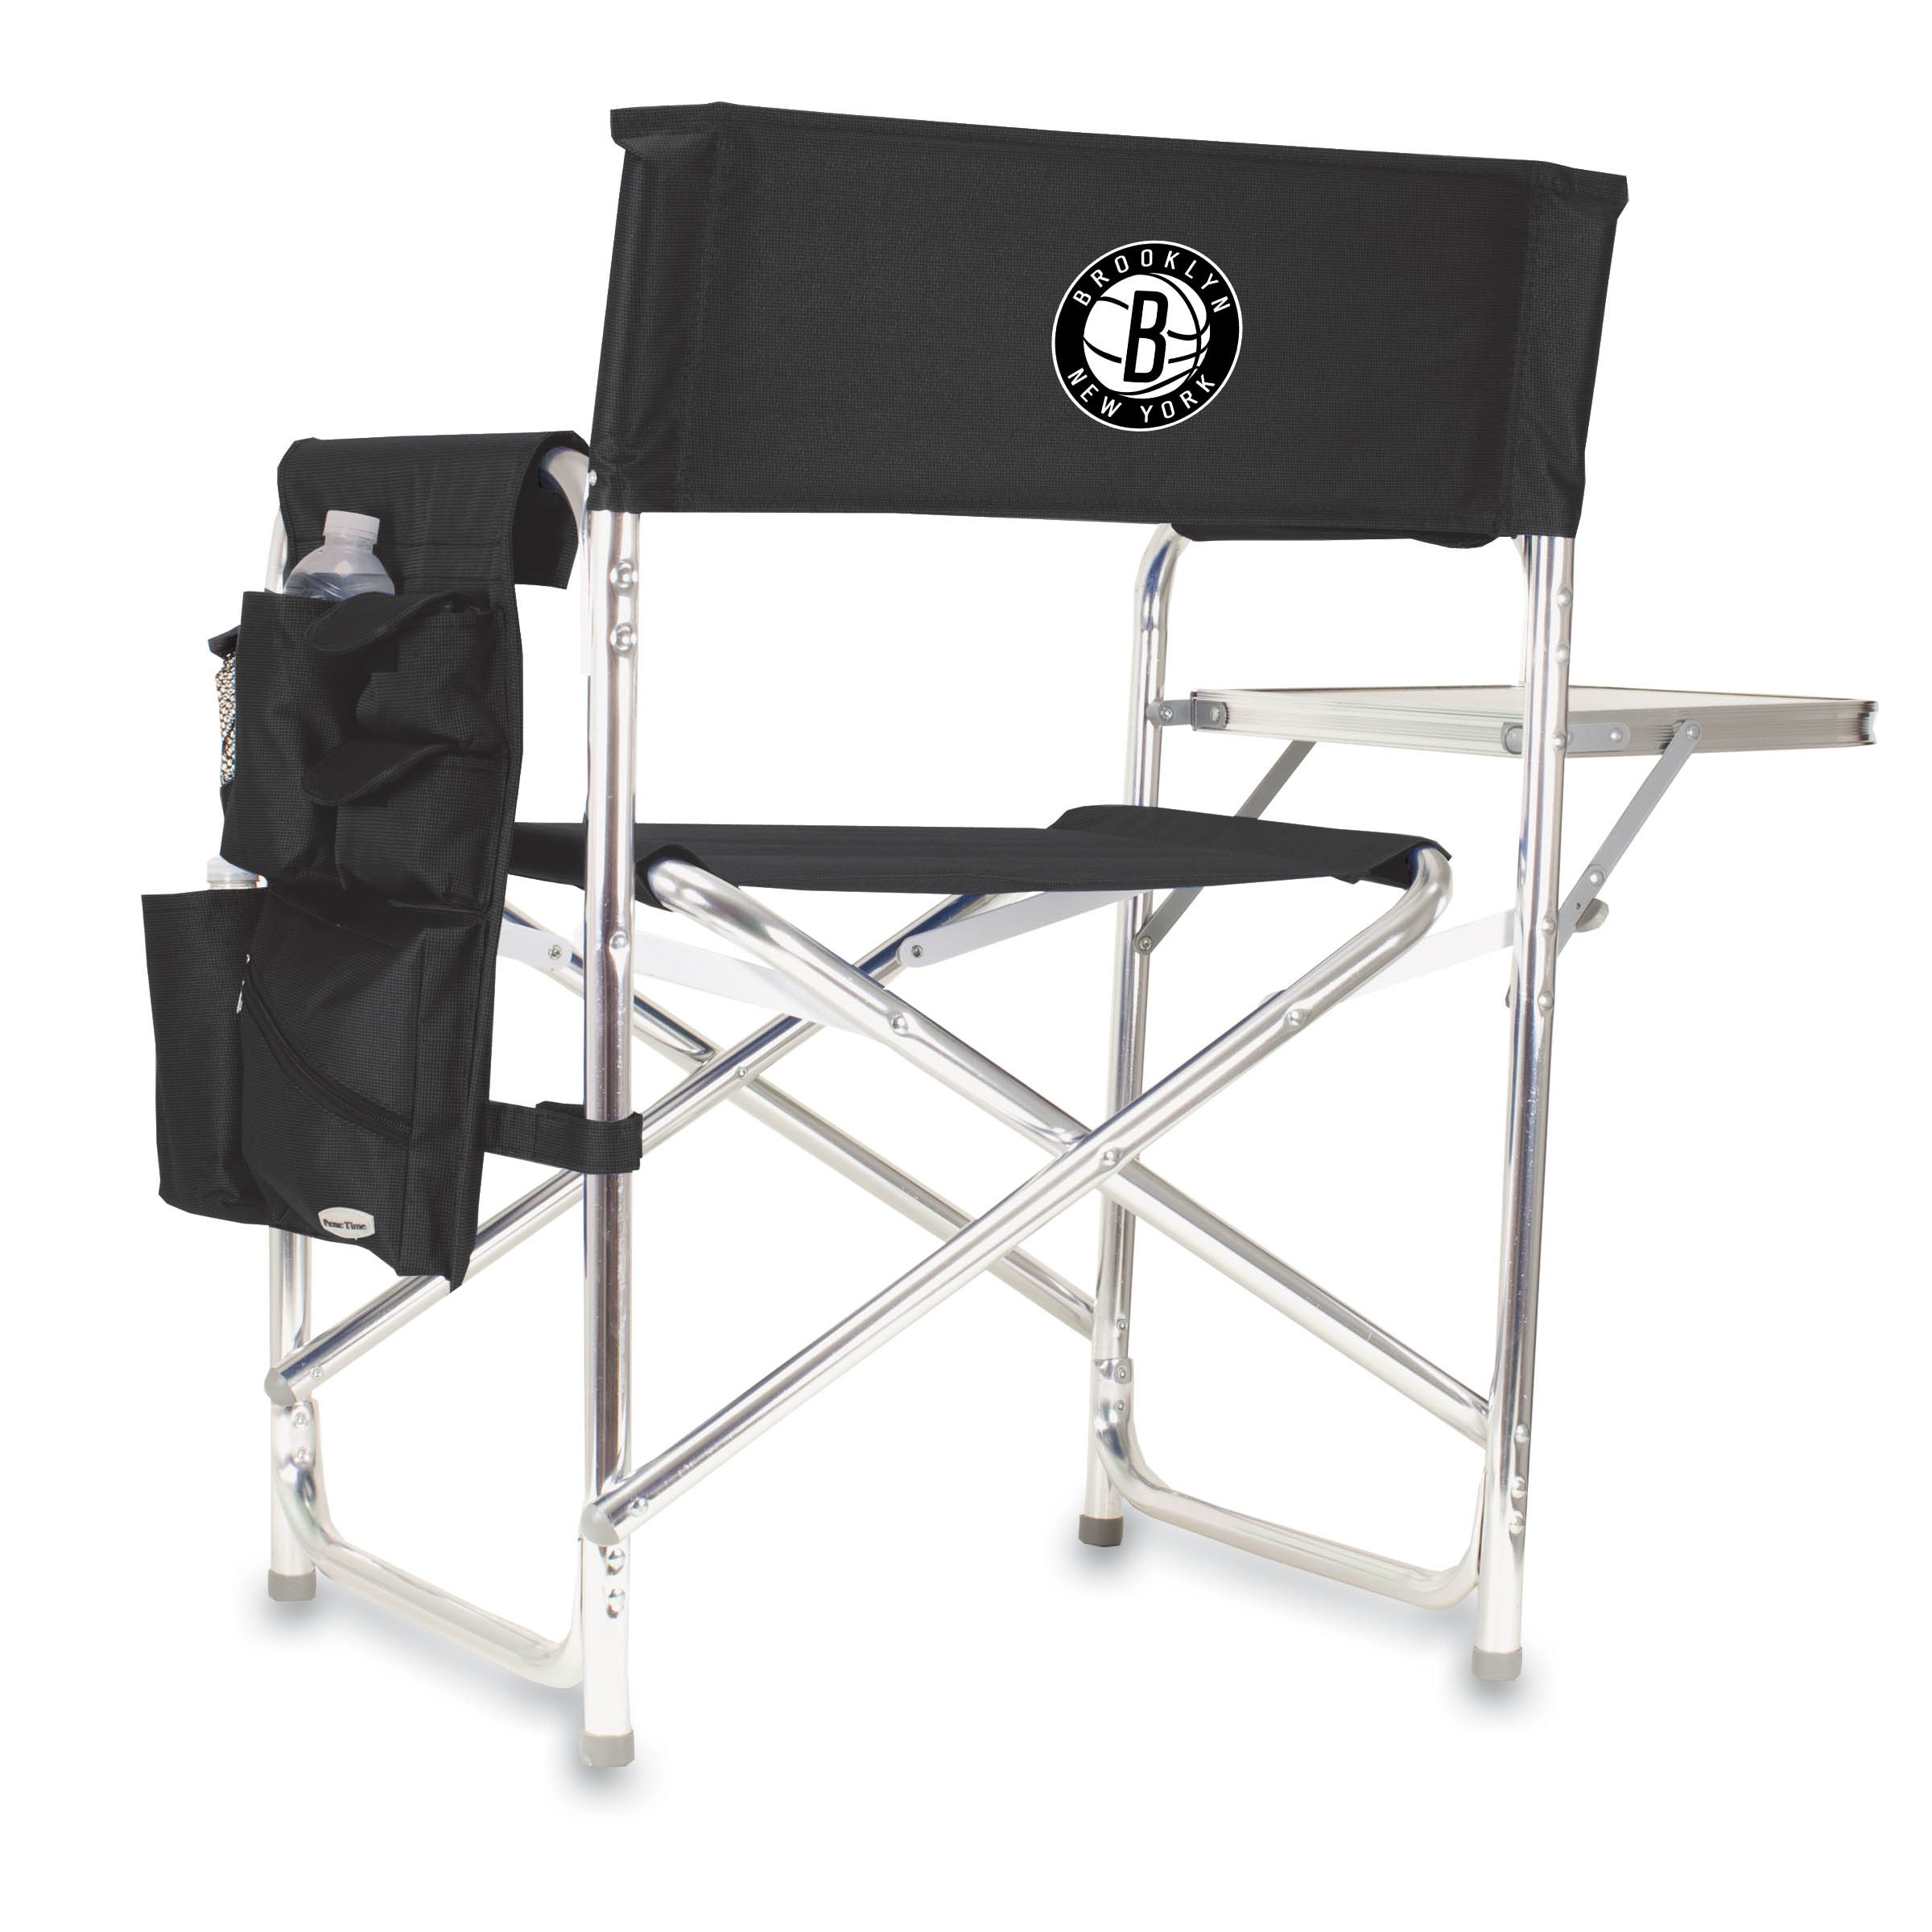 Picnic Time Nba Sports Chair Brooklyn Nets